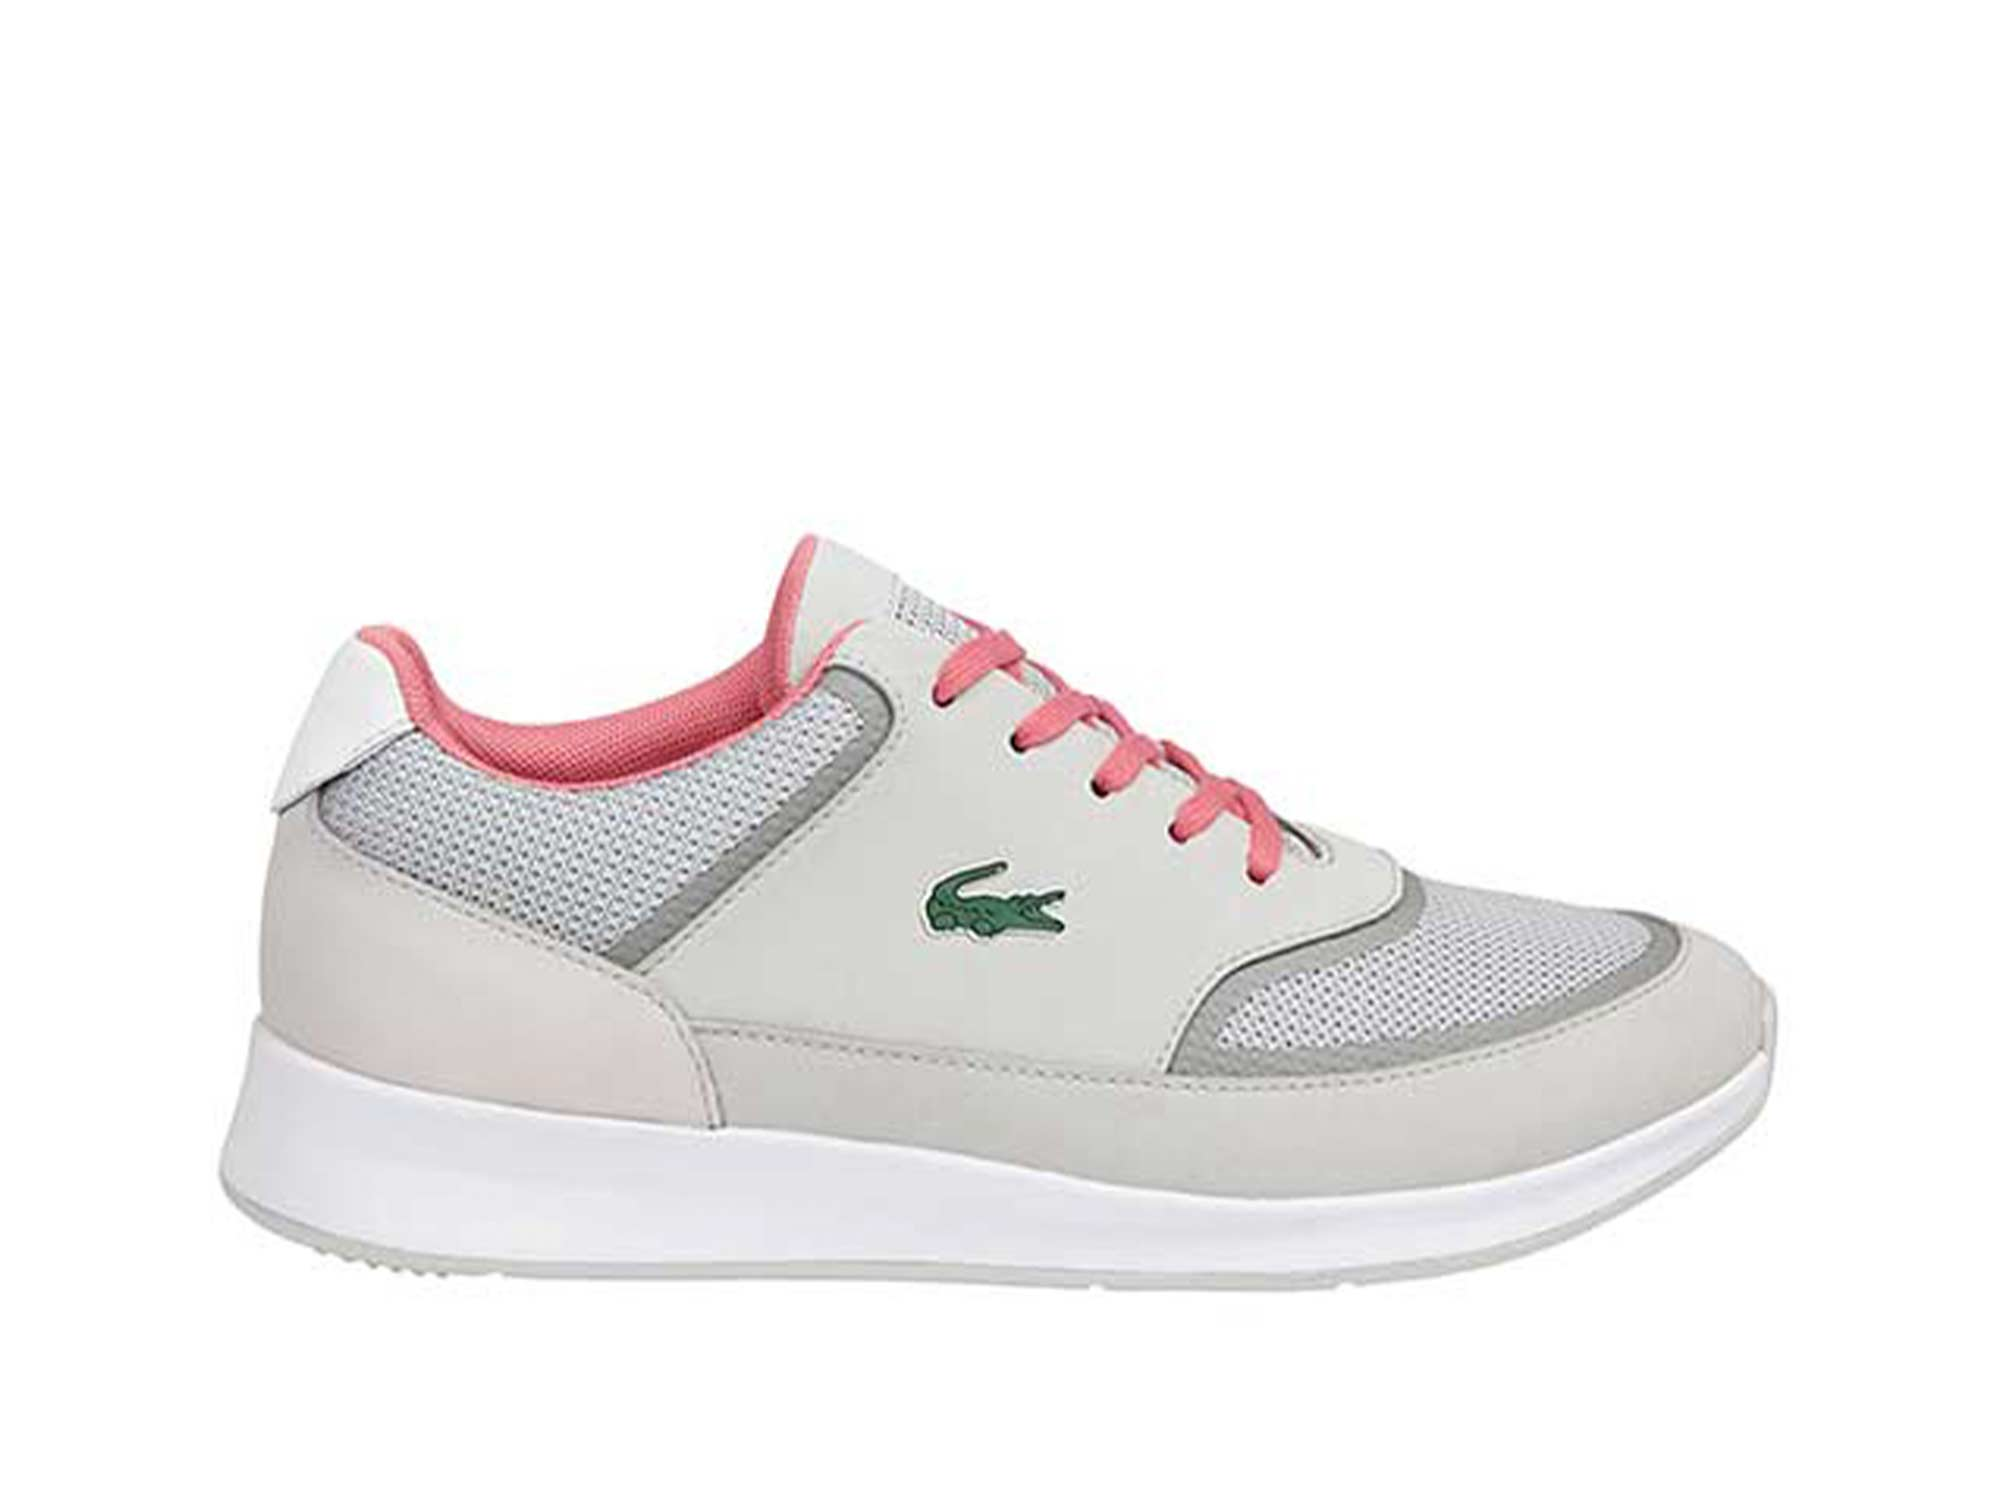 ZAPATILLA LACOSTE CHAUMONT MUJER GRIS